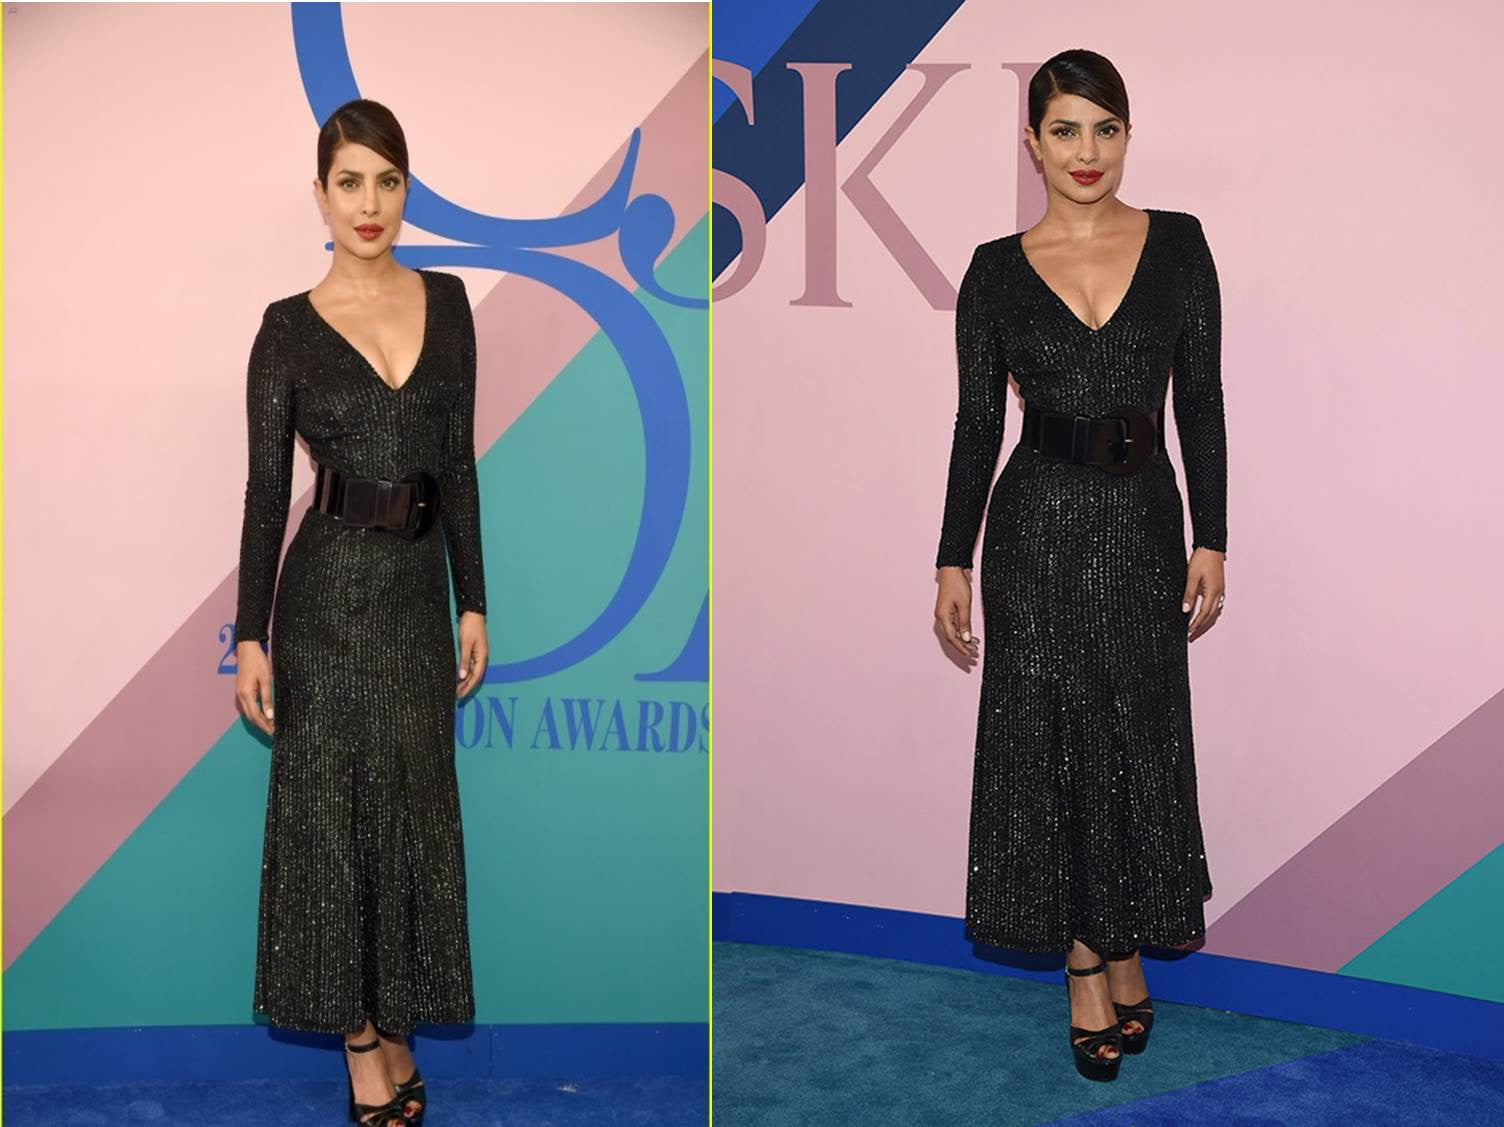 Priyanka Chopra Wear Michael Kors' Designs at CFDA Fashion Awards 2017